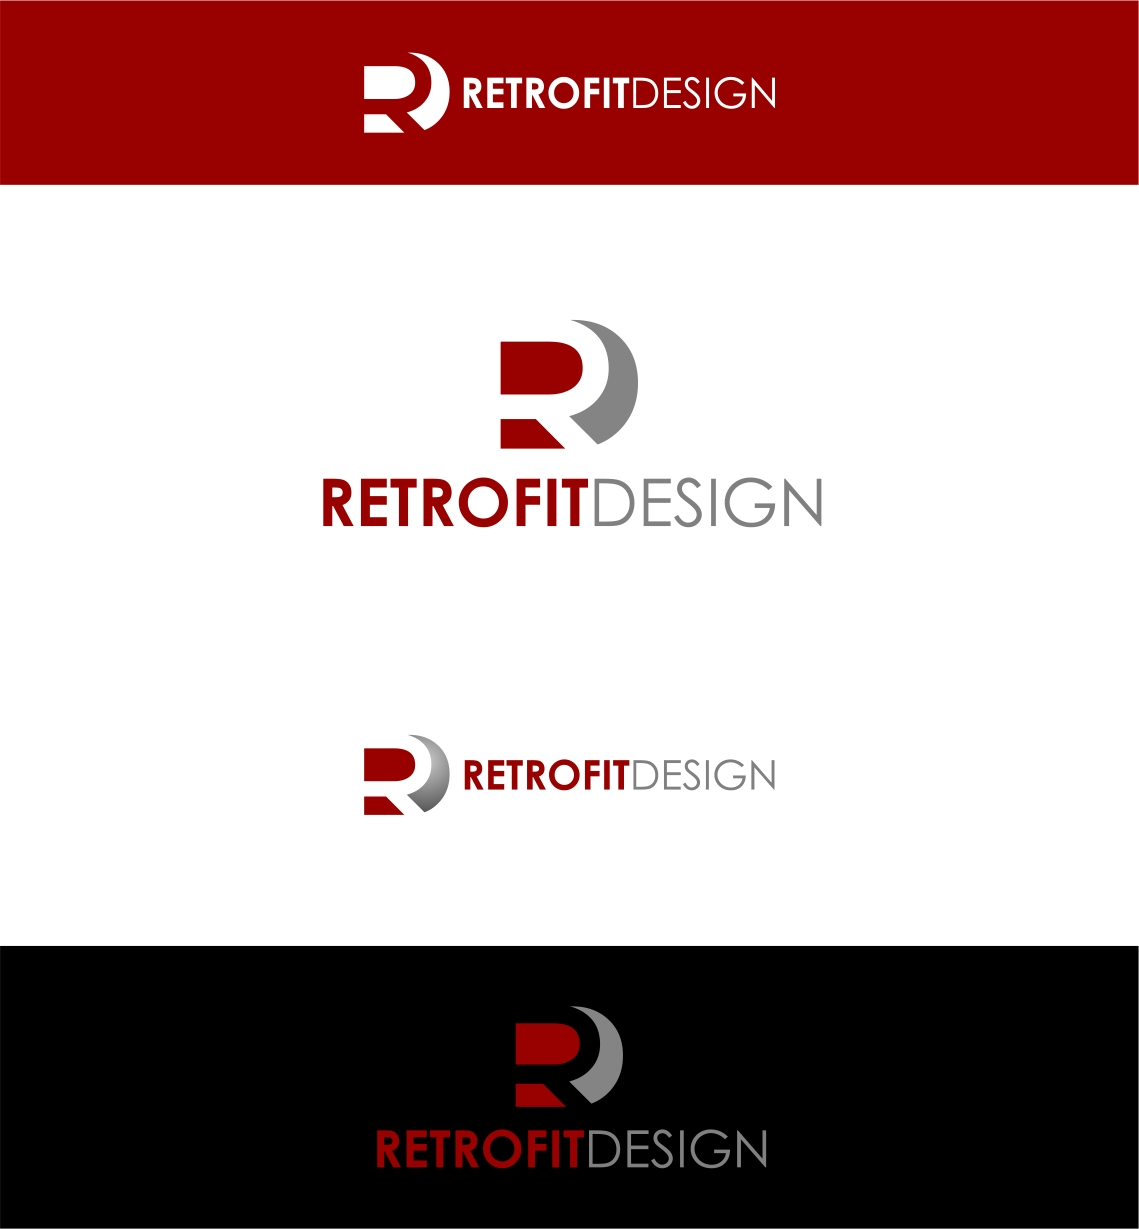 Logo Design by haidu - Entry No. 193 in the Logo Design Contest Inspiring Logo Design for retrofit design.